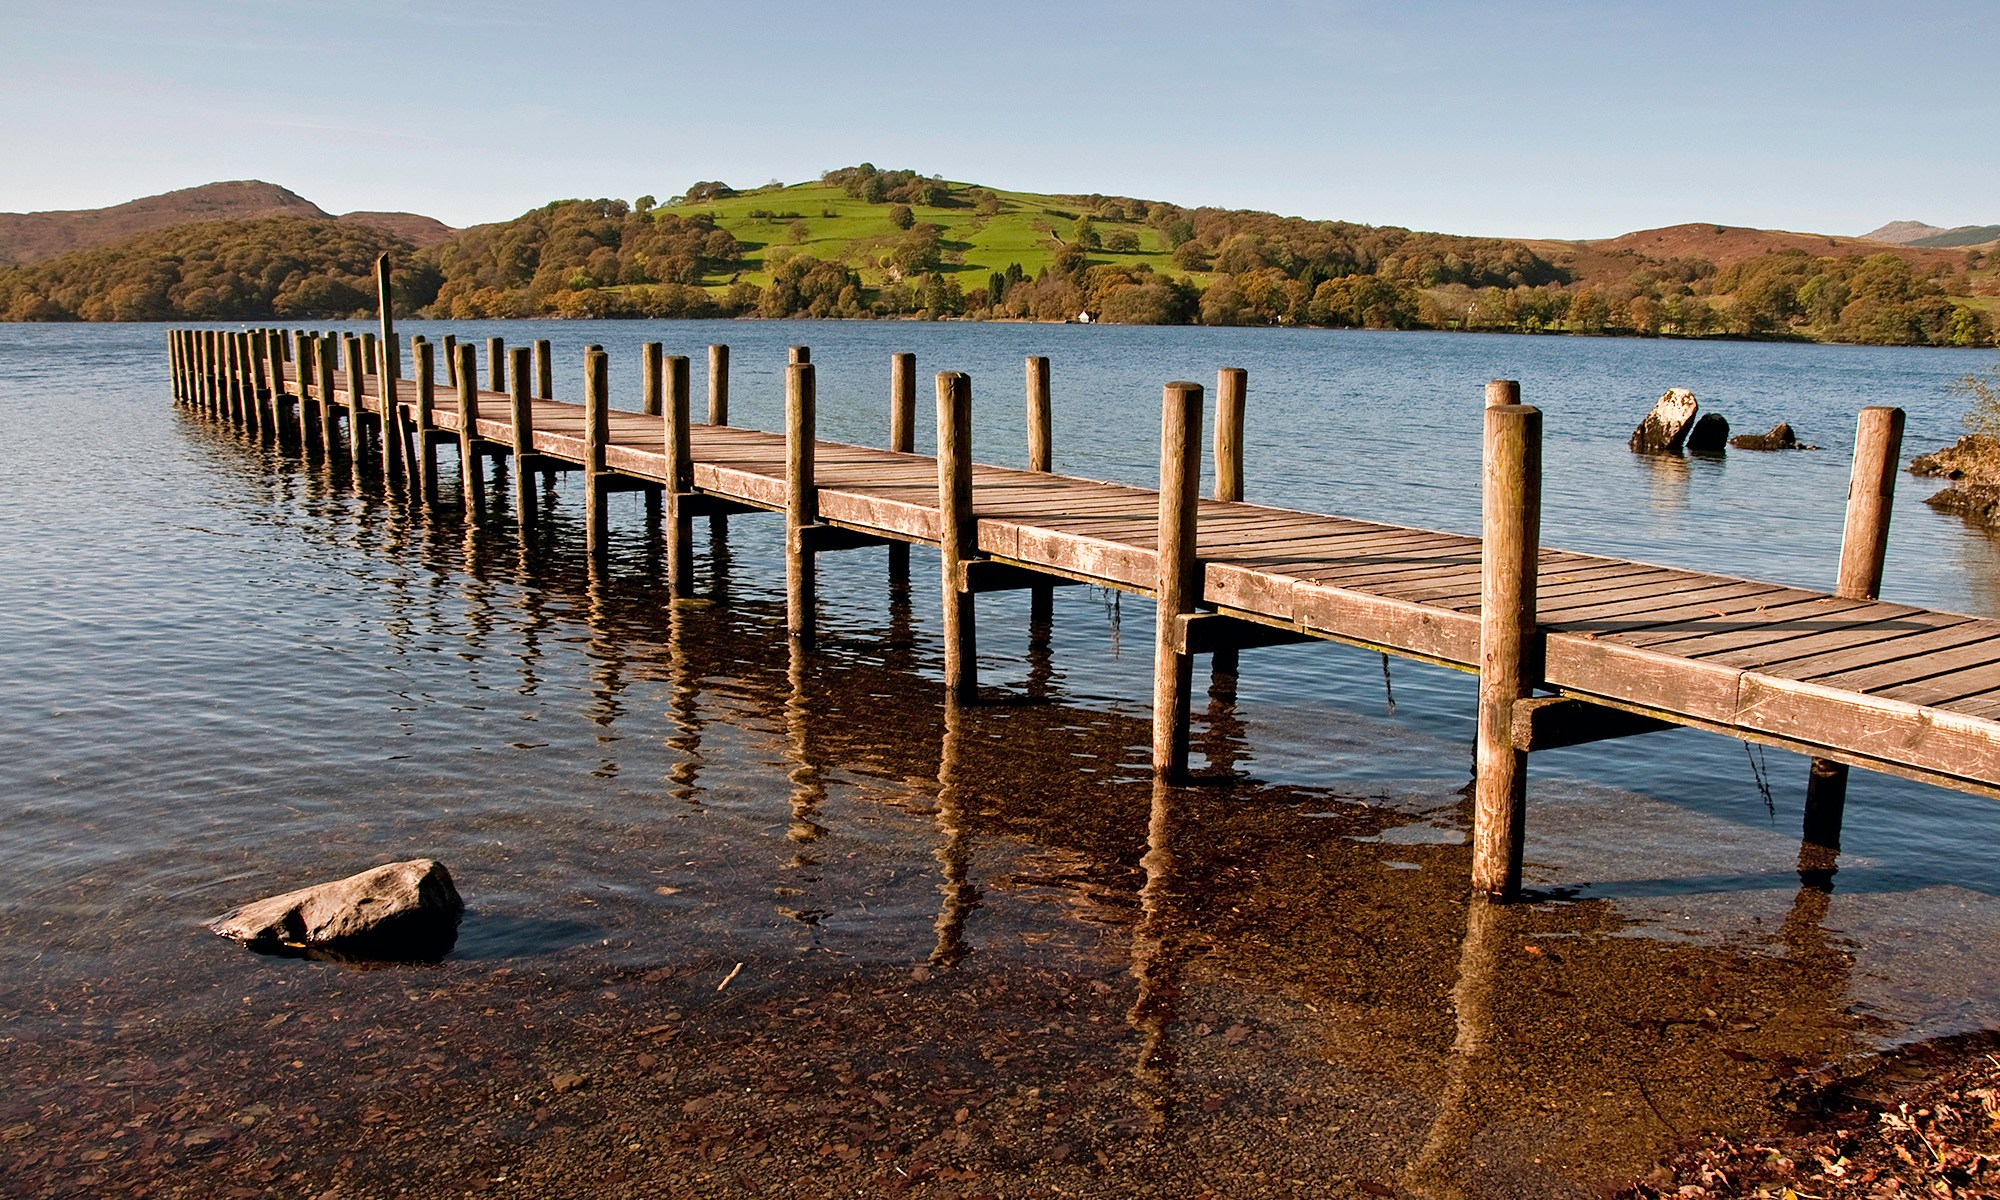 Jetty at Coniston Water, Lake District